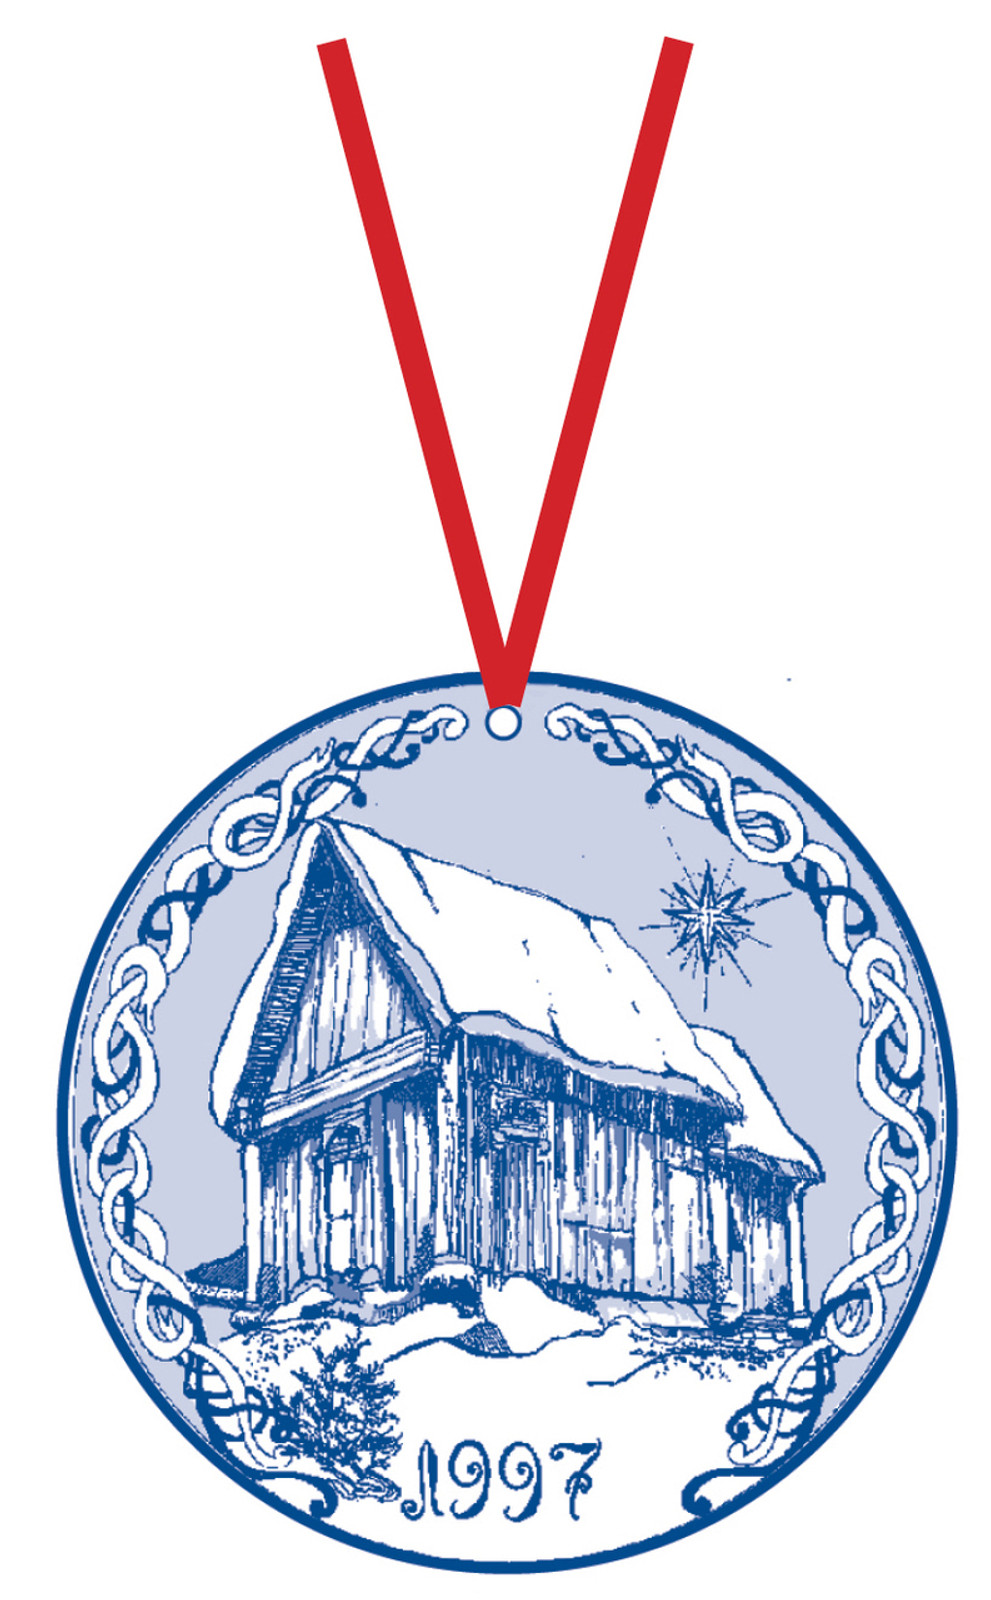 1997 Stav Church Ornament - Trondheim. Made by Norse Traditions and available at The Nordic Shop.